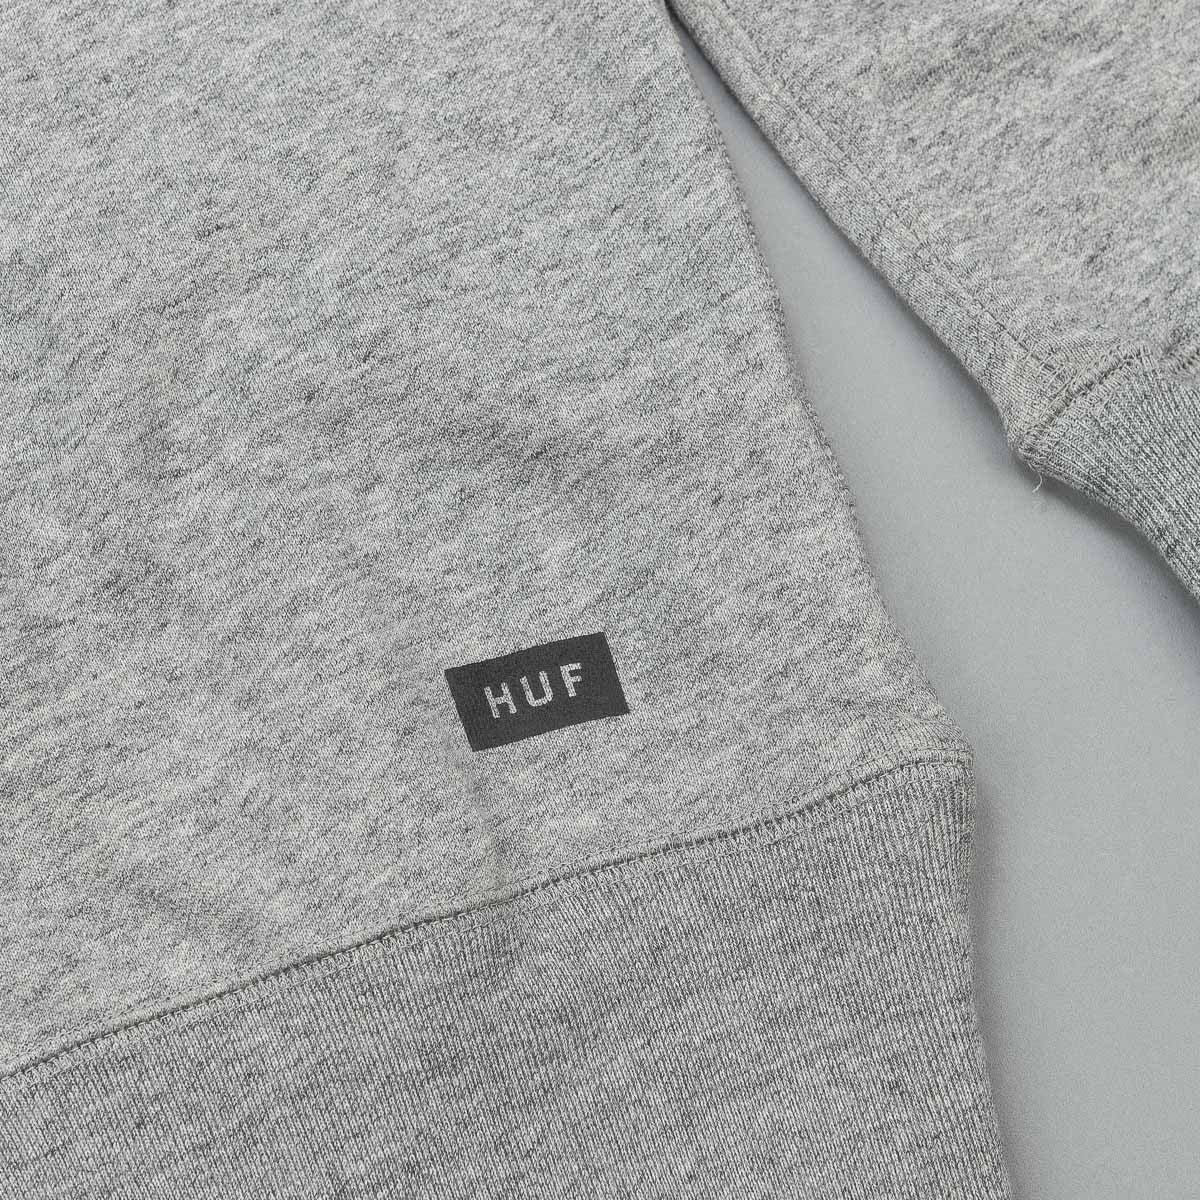 HUF Cadet Crew Neck Sweatshirt - Grey Heather